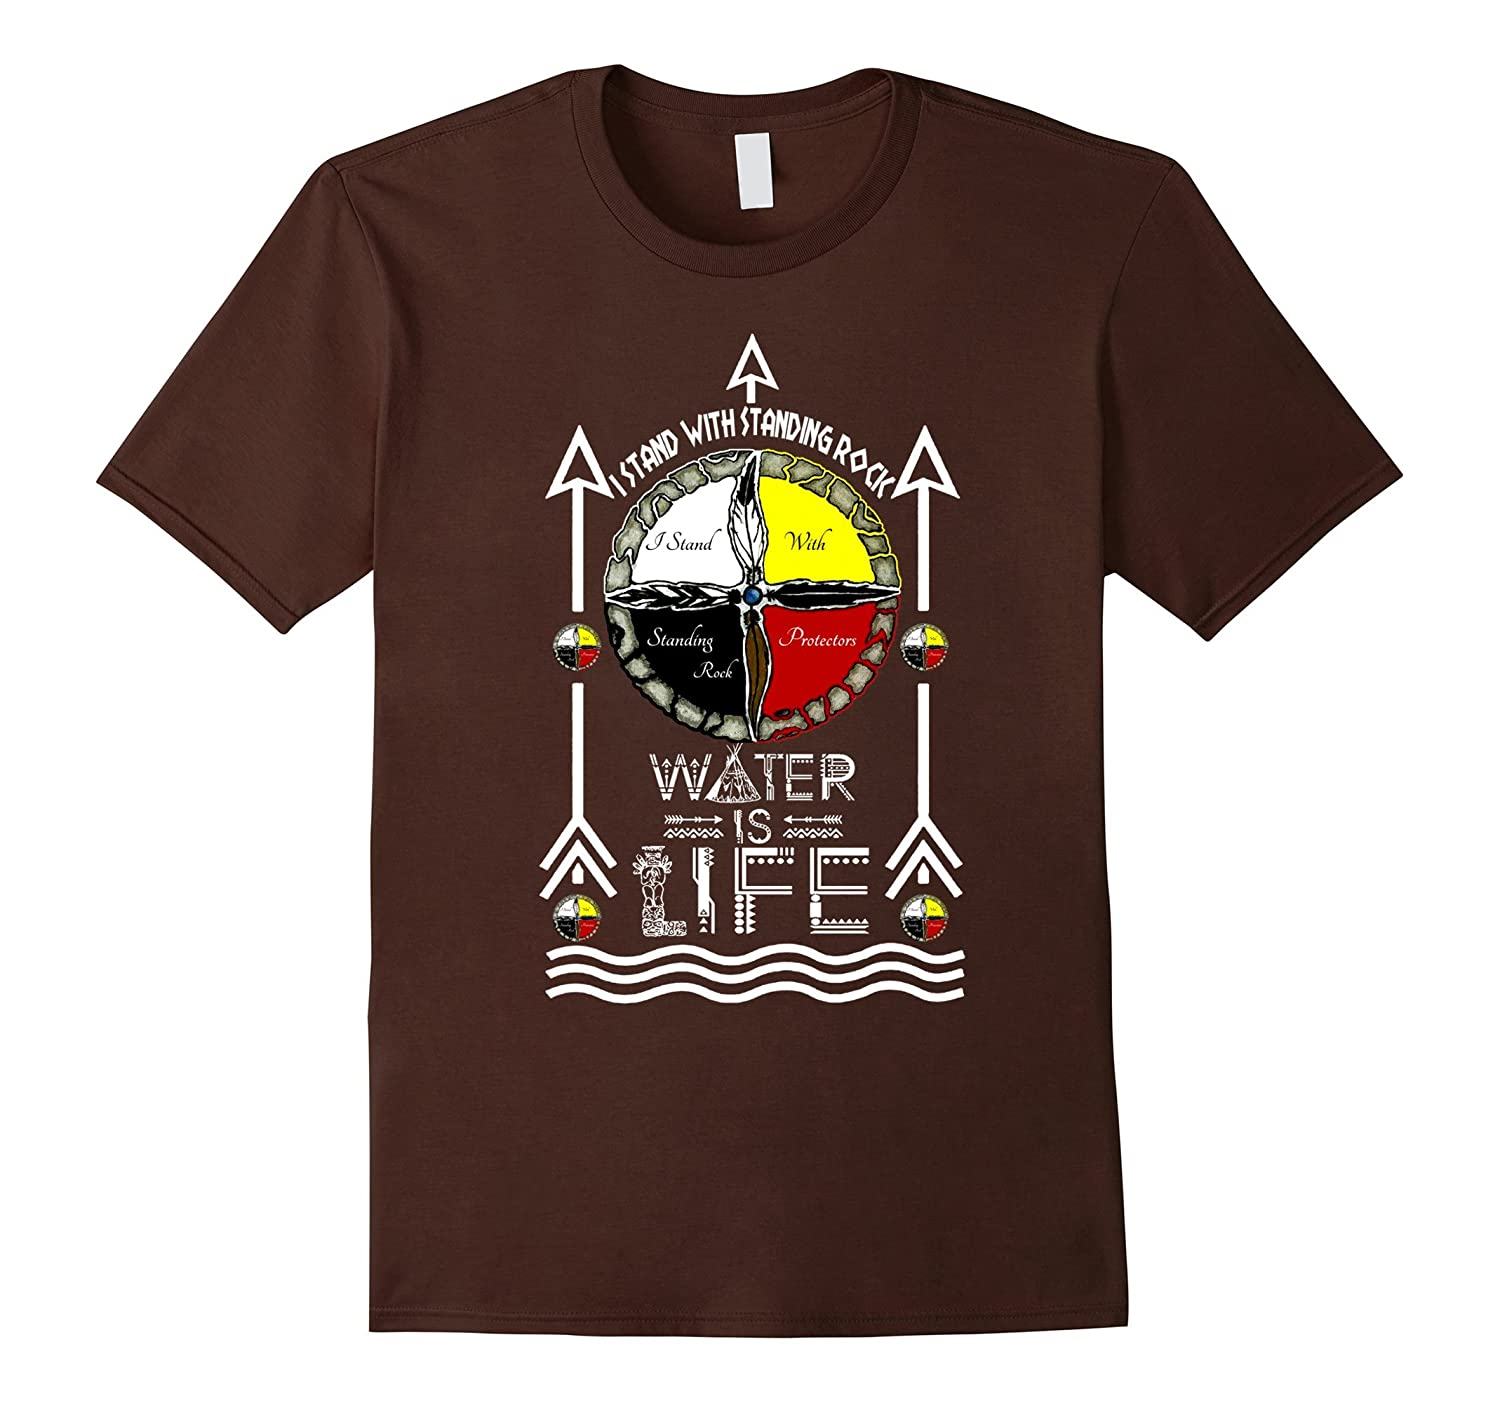 I Stand With Standing Rock Sioux tribe t-shirt protecors-TD